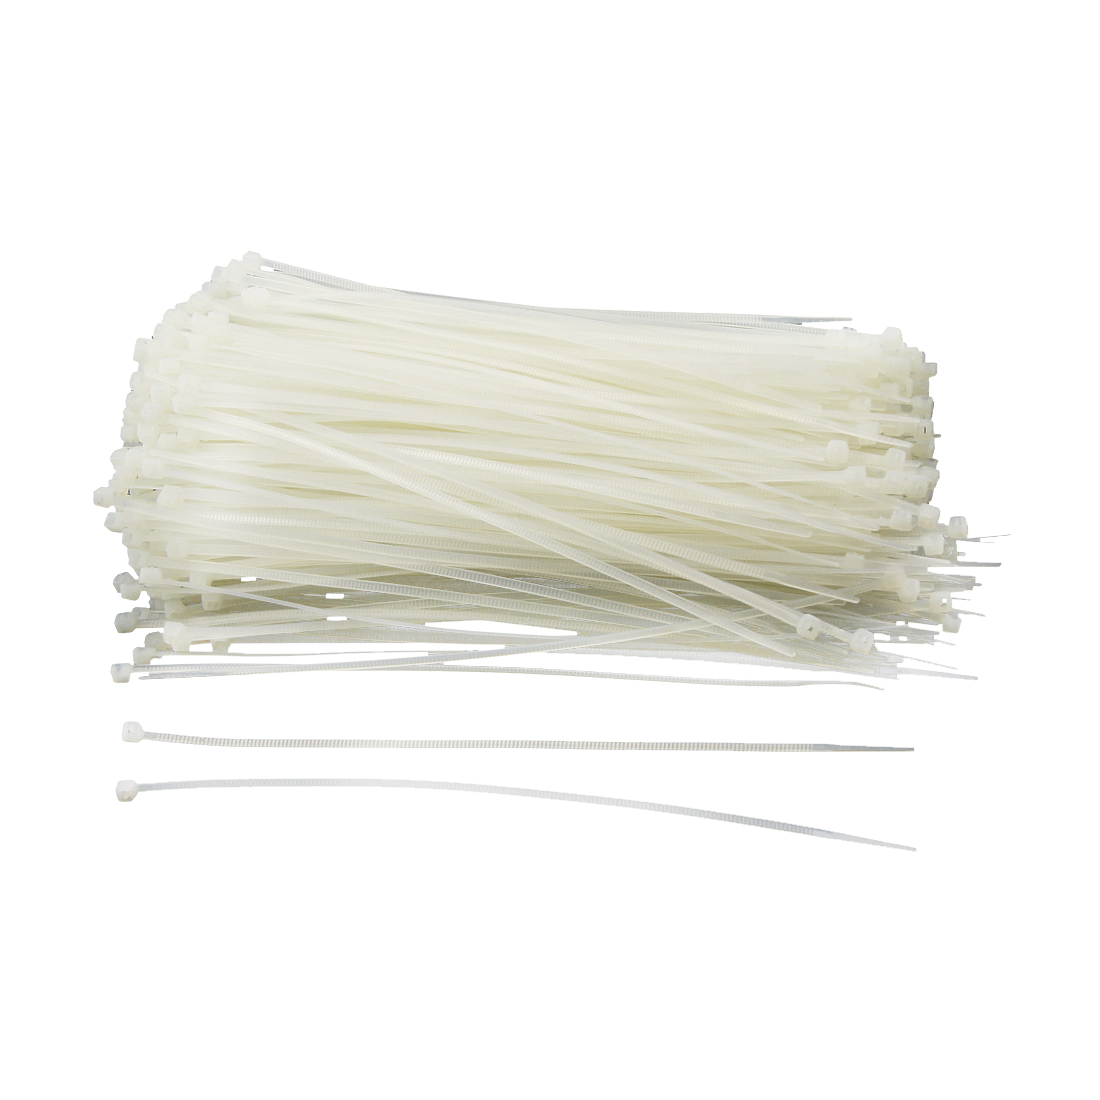 500 Pcs White Plastic Cable Zip Tie Fasten Wrap 195mm x 2.7mm